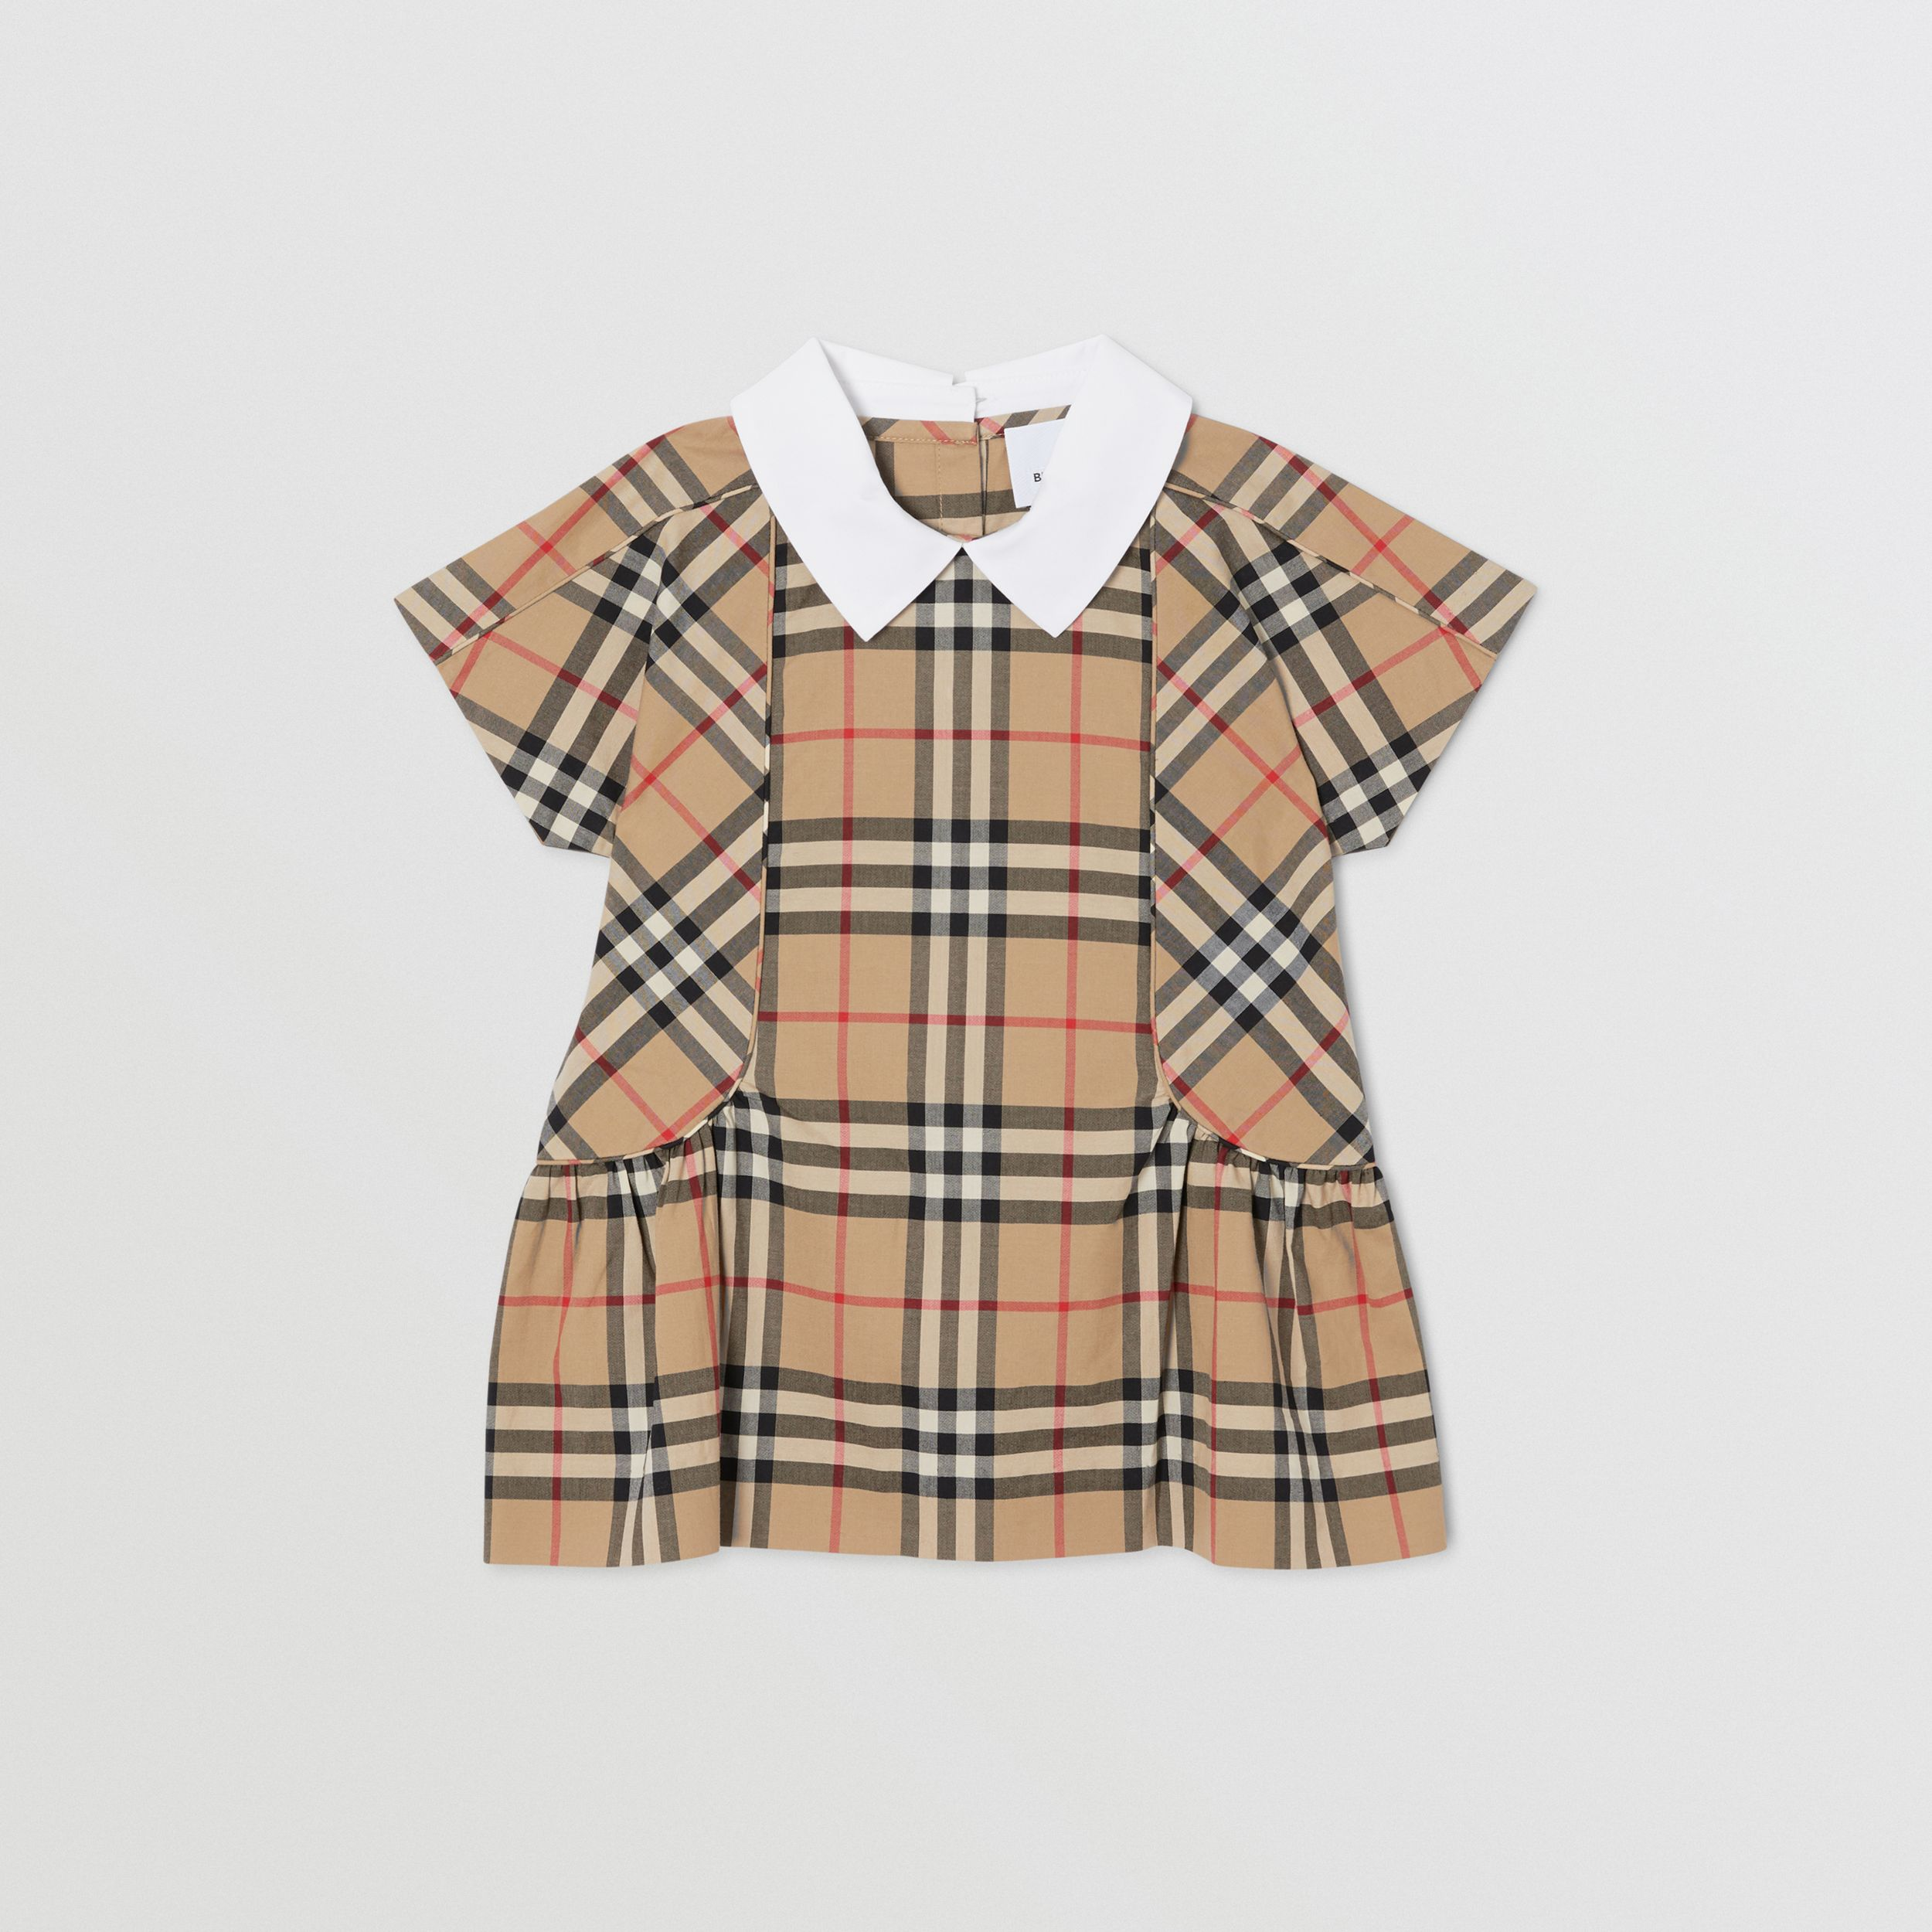 Contrast Collar Vintage Check Cotton Dress in Archive Beige - Children | Burberry - 1